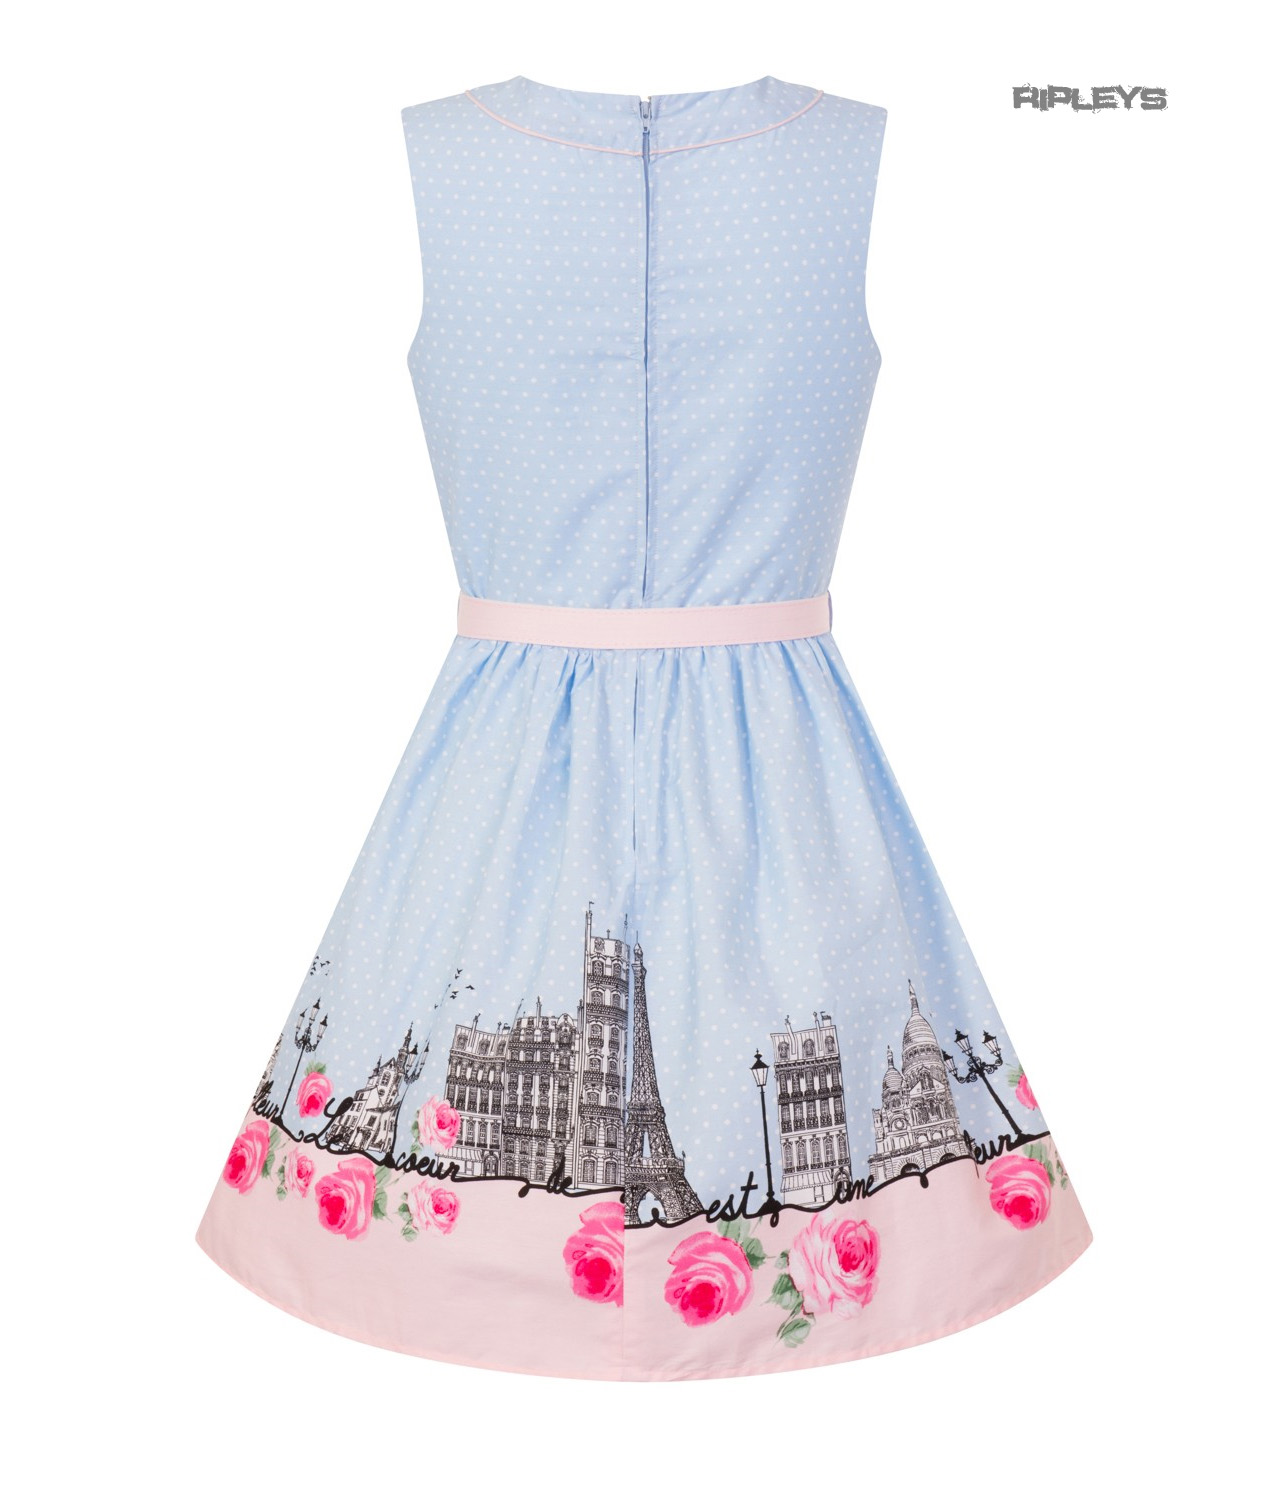 Hell-Bunny-50s-Vintage-Blue-Polka-Dot-PANAME-Mini-Dress-Paris-All-Sizes thumbnail 18